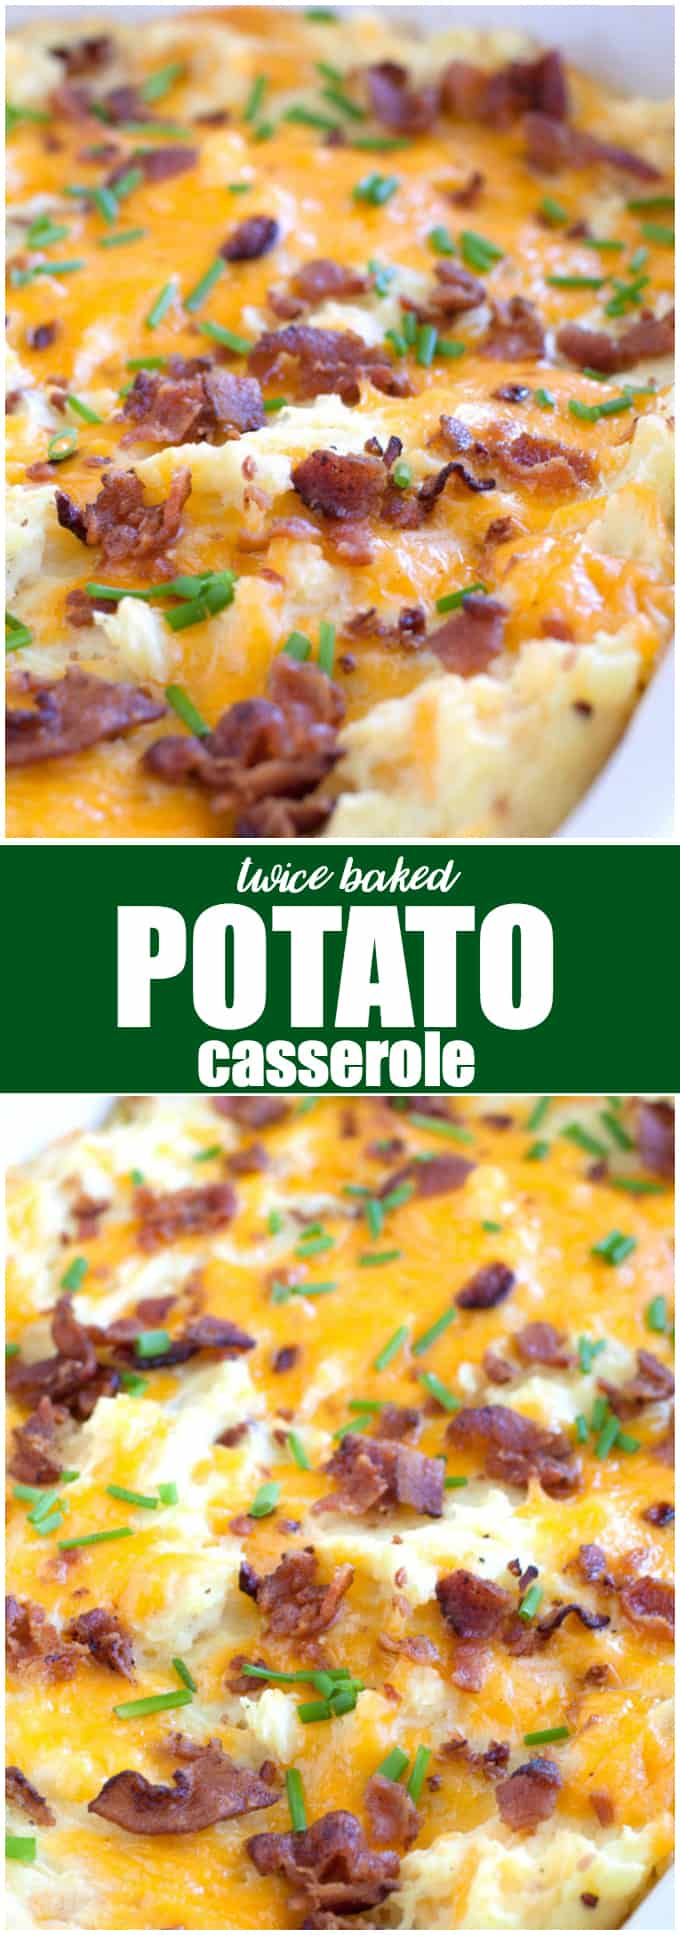 Twice Baked Potato Casserole - Far less labour intensive than traditional twice-baked potatoes, but with all the cheese, bacon and green onion flavours you love. This side dish pairs well with everything!